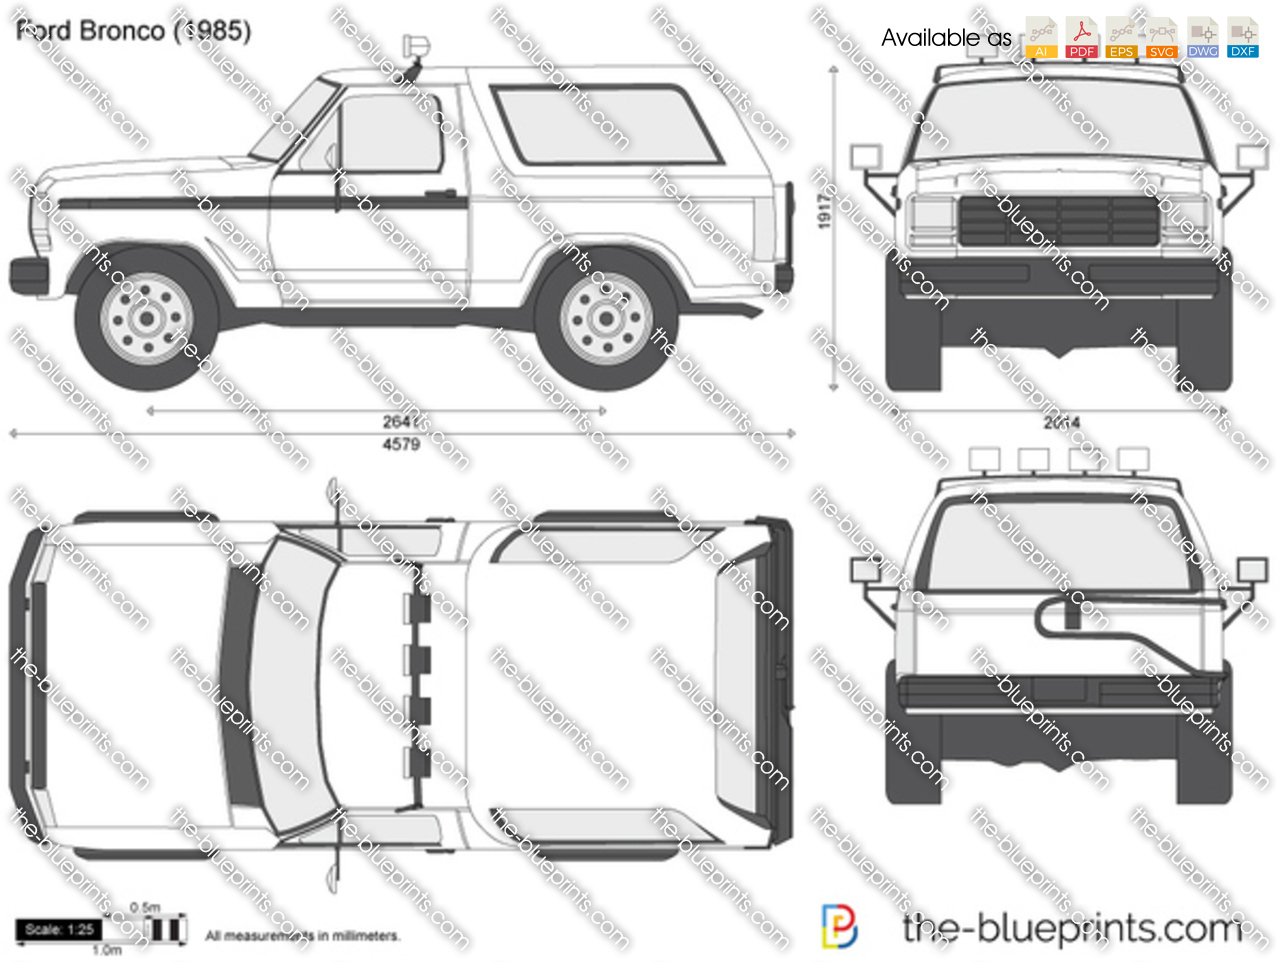 Ford Body Parts Diagram further No Heat Buick Rendezvous further ponents Ghh likewise Page1 additionally Ferrari F40 Owners Manual Line Diagrams The. on car axle diagram